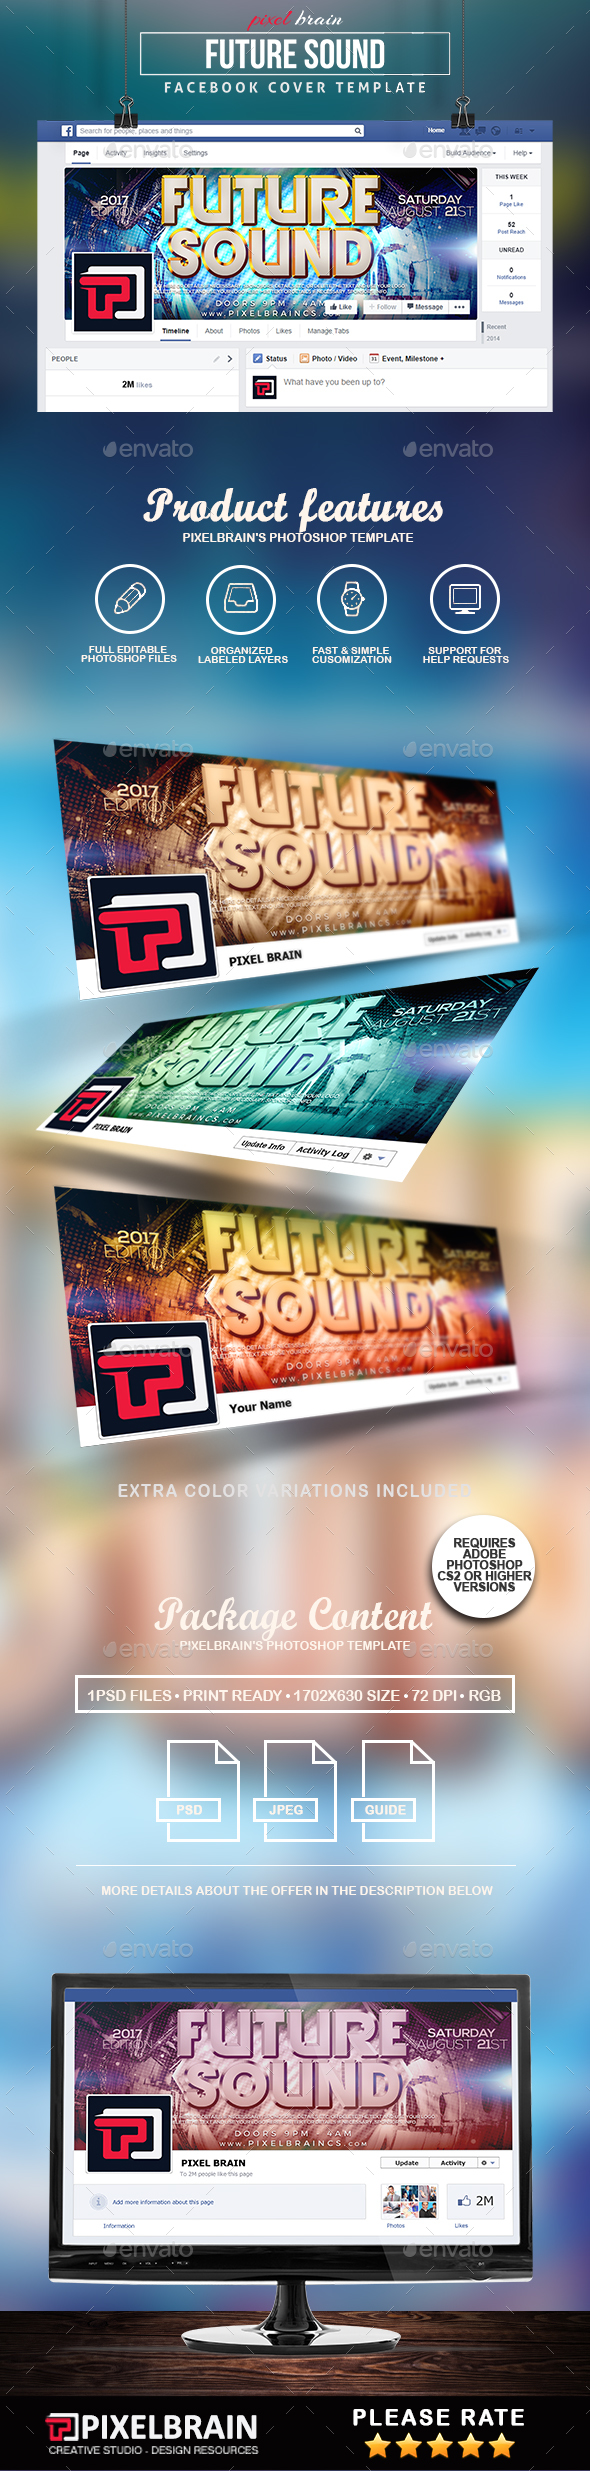 Future Sound Facebook Cover Template - Facebook Timeline Covers Social Media